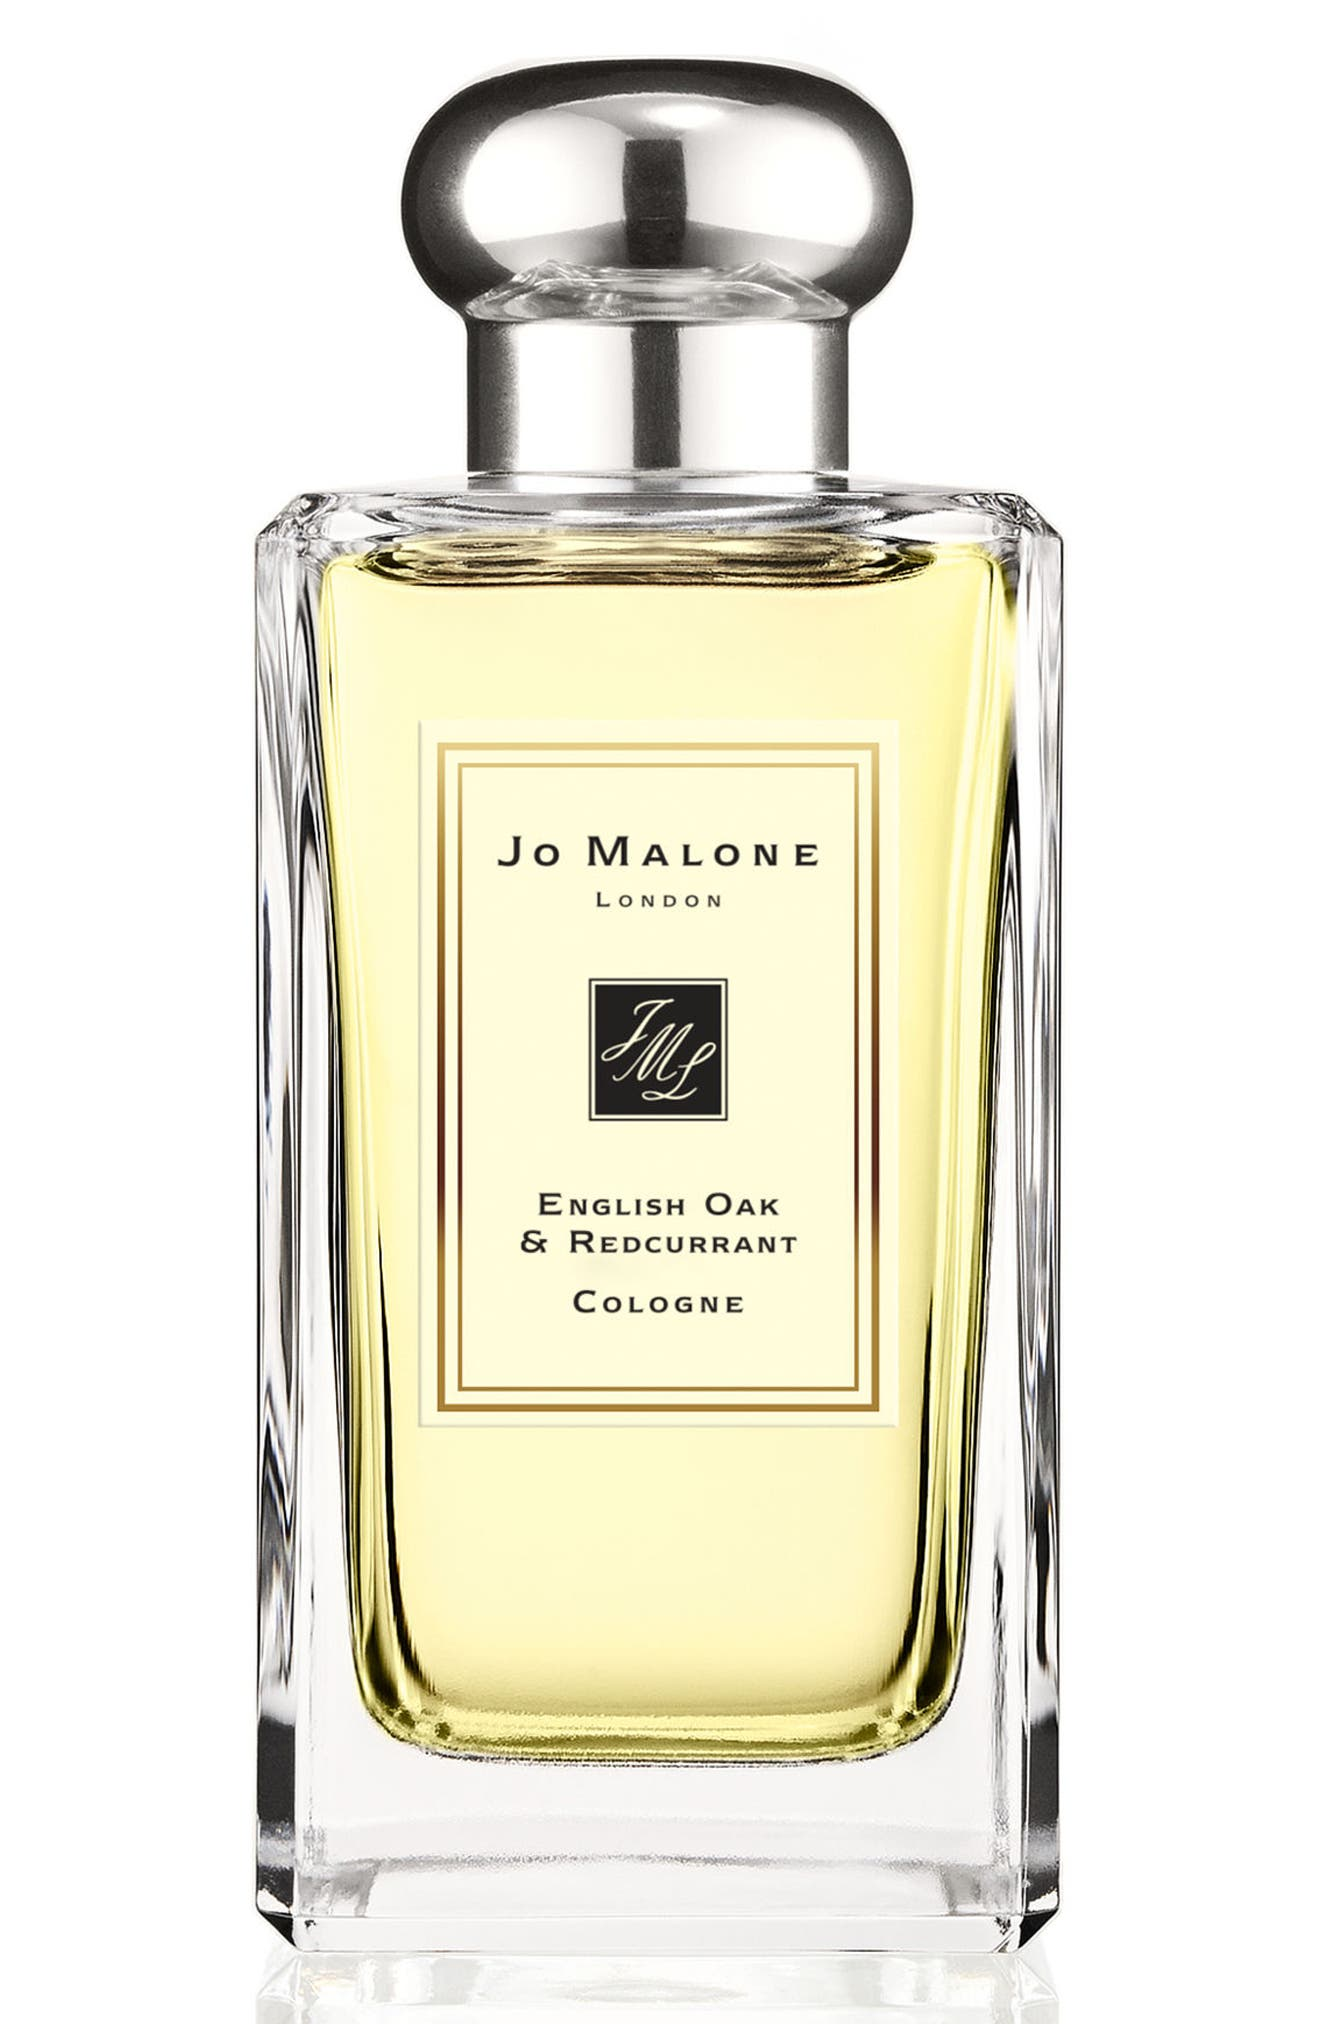 Jo Malone London™ English Oak & Redcurrant Cologne